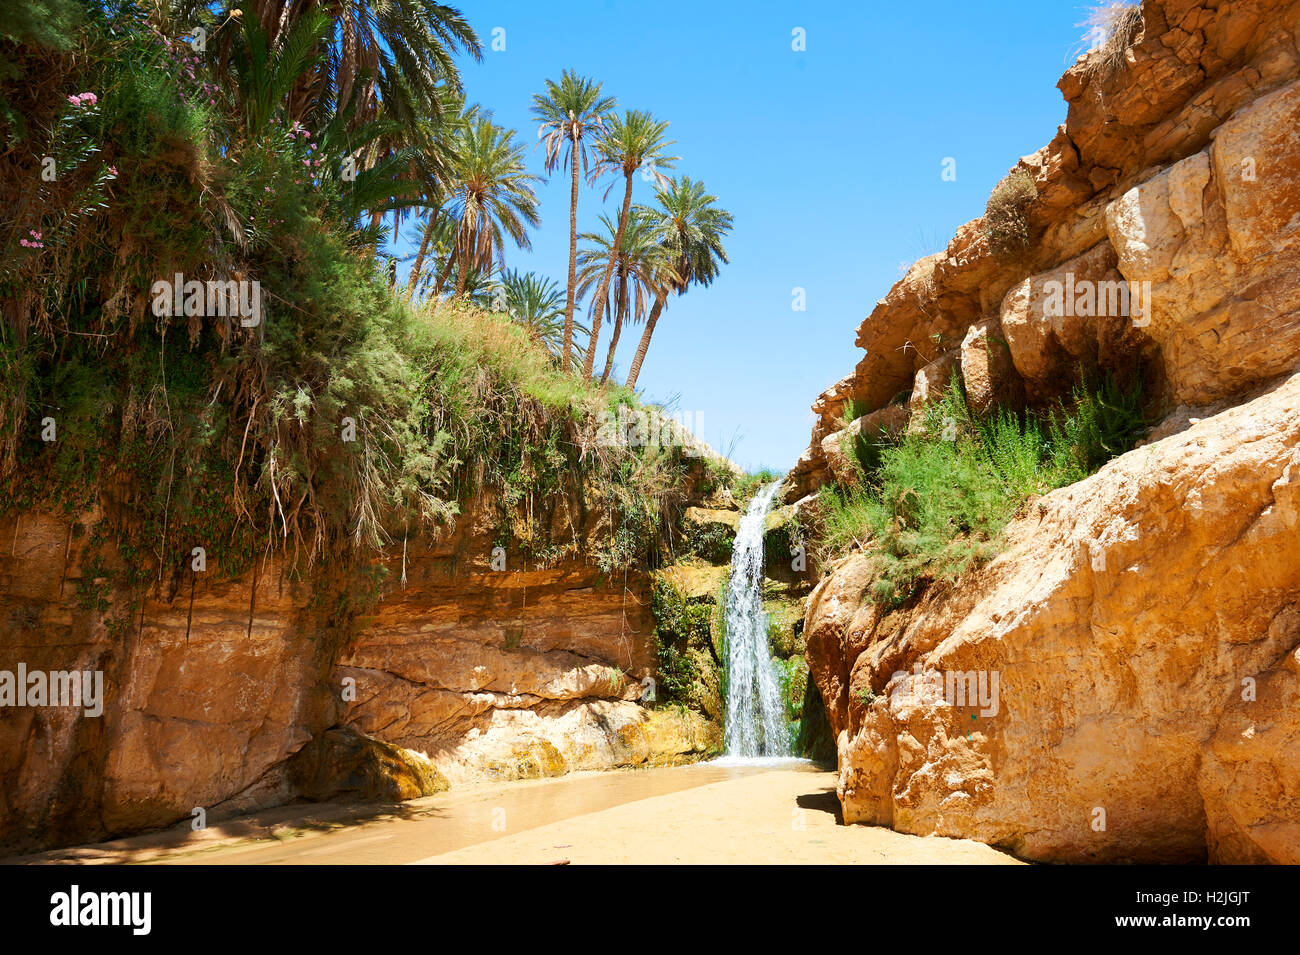 Mides Gorge waterfall amongst the date palms of the Sahara desert oasis of Mides, Tunisia, North Africa - Stock Image